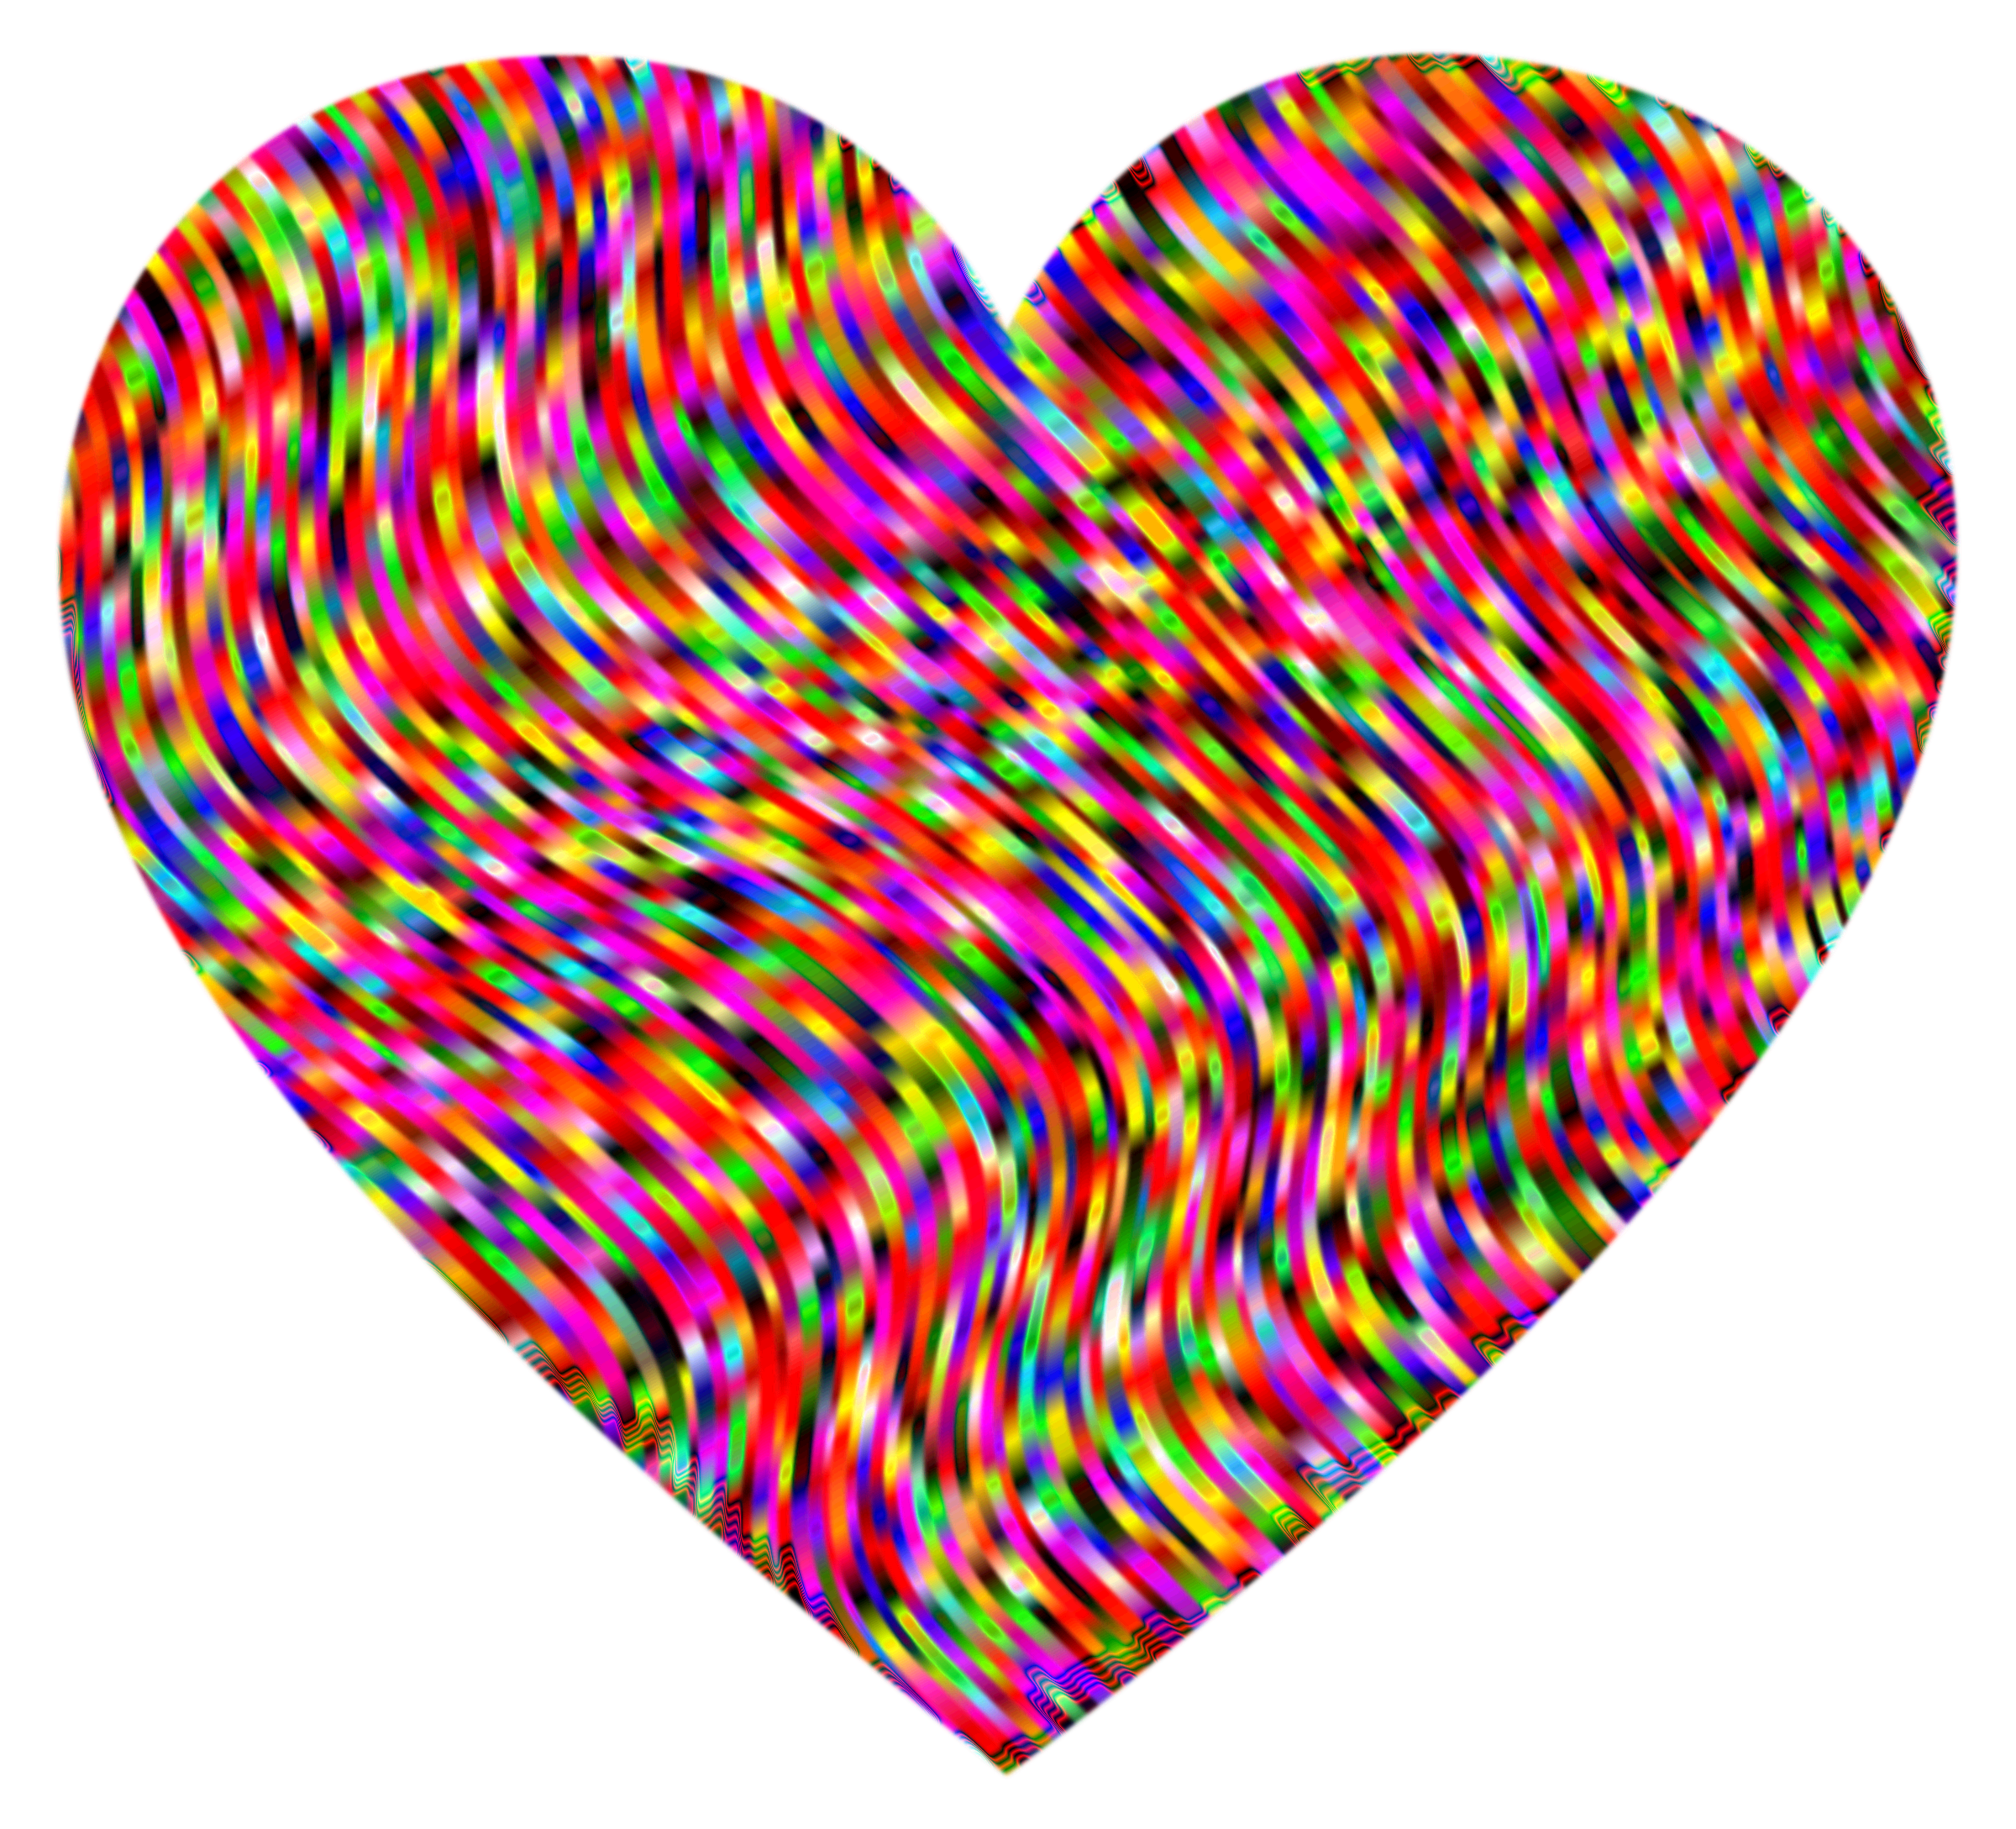 Heart Waves Psychedelic by GDJ